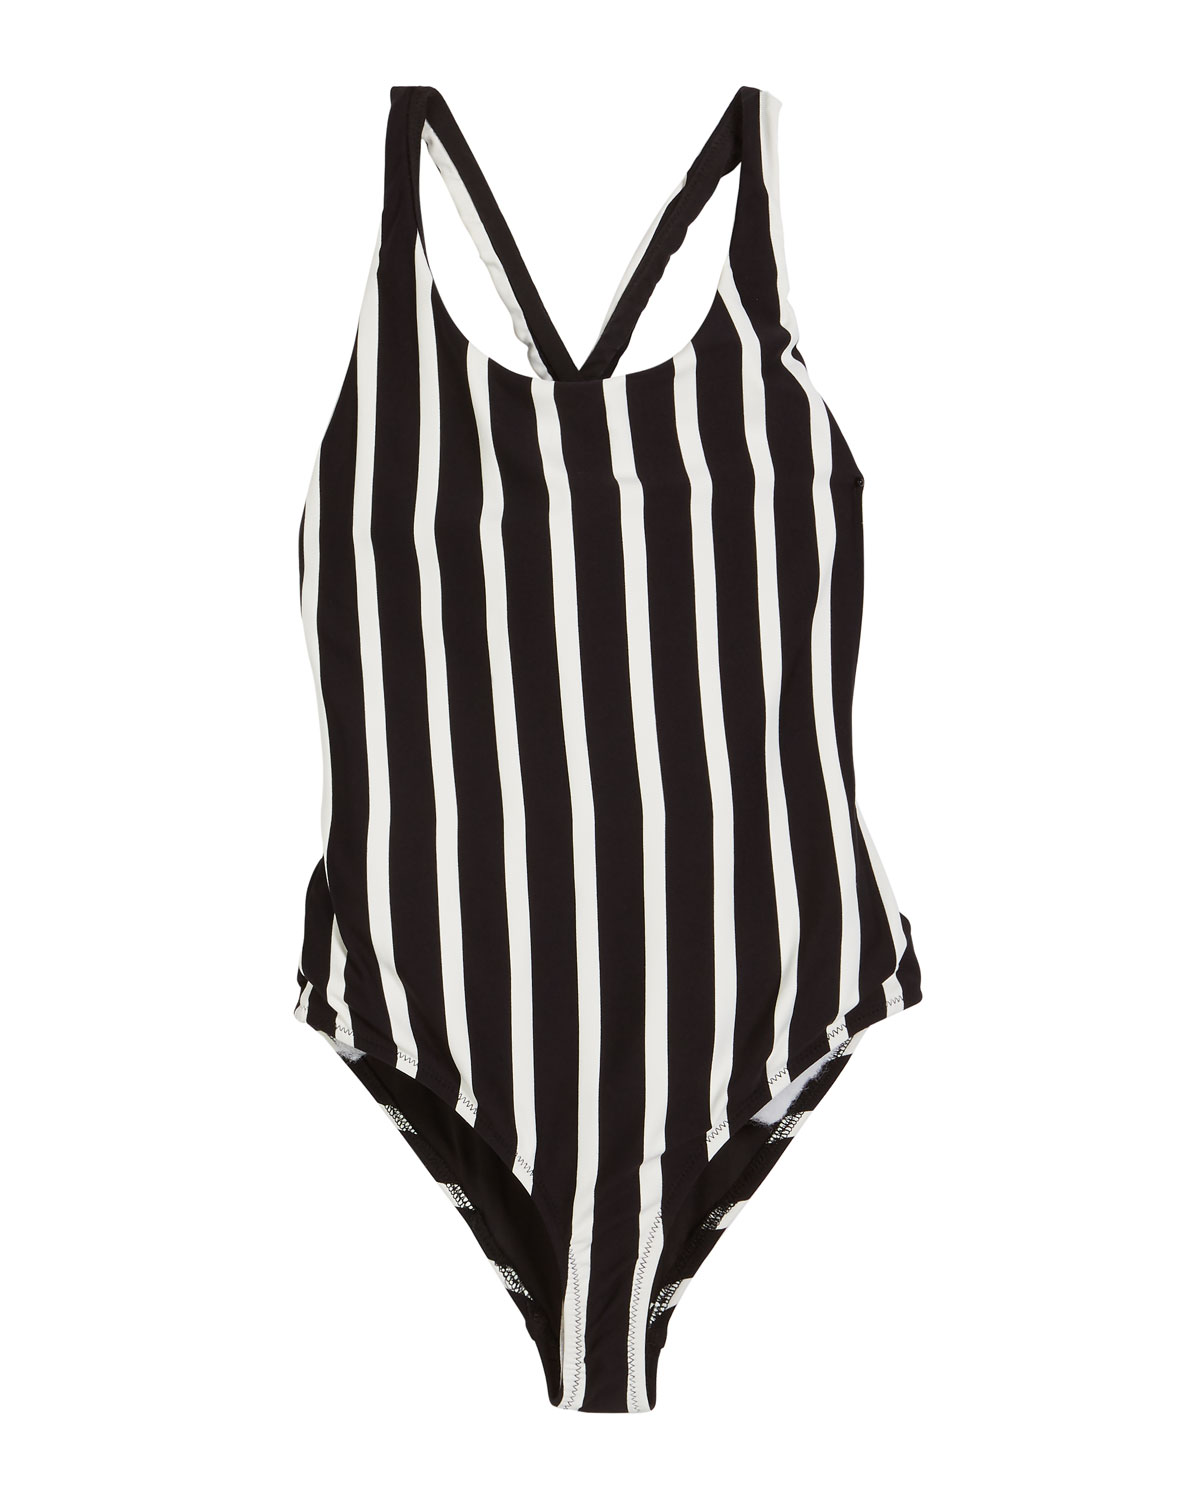 692c6d00dfa85b Milly Minis Striped Scoop-Neck One-Piece Swimsuit, Size 4-6 and ...